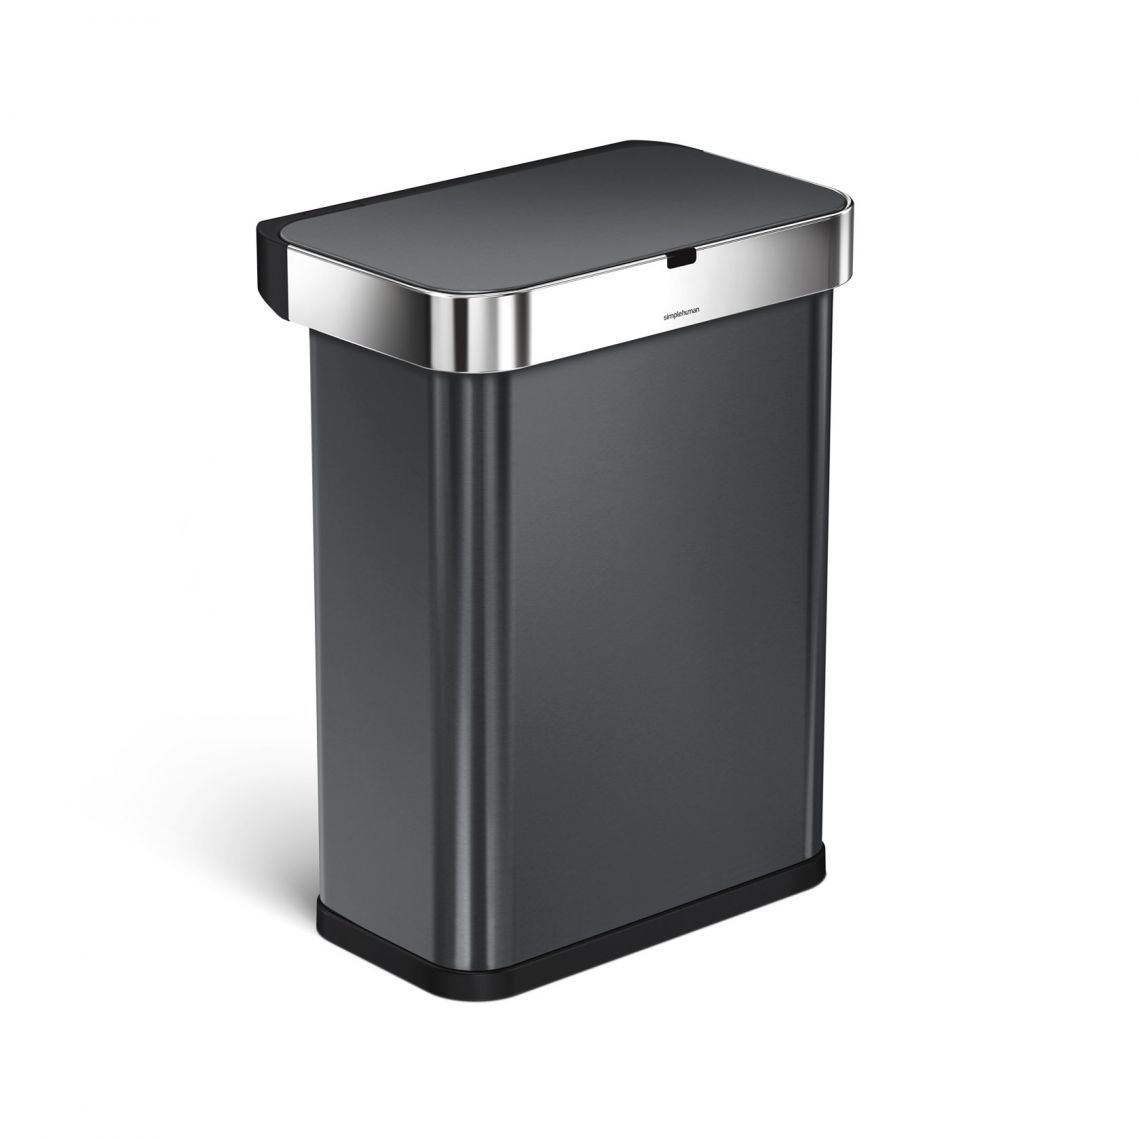 """simplehuman sensor trash can - We've found an awesome smart trash can that will make wish you've always had this one. This simple human can is voice and motion sensored for easy use. All you have to do is say """"open can"""", and the lid will open for you, no matter how far away you are. It's also motion sensored, so you can wave your hand over the lid, and it will open. There are also no false opens, when someone passes by…and the lid won't just close on you, if you're standing in front of the trash can too long. It has a sensor that knows you're still using the can, and won't close until you walk away. The lid has a quiet motor, so no worries about a noisy trash can. But the sensor is just the cherry on top for this can. Inside, there is a pocket built right in, to store your liners. The lid also has a hide away cover, so you won't even see your trash bag liner from the outside, giving it a nice clean look. This can comes in 5 different colors to match your kitchen. This black stainless steel fit perfectly in our house. It also has An invisible nano-silver clear coat"""" so there's protection from finger prints and germs. It runs of batteries or you can plug it right in. Simplehuman also has a 5 year warranty, so you can rest easy that it's going to last. Best trash can we've even owned!"""